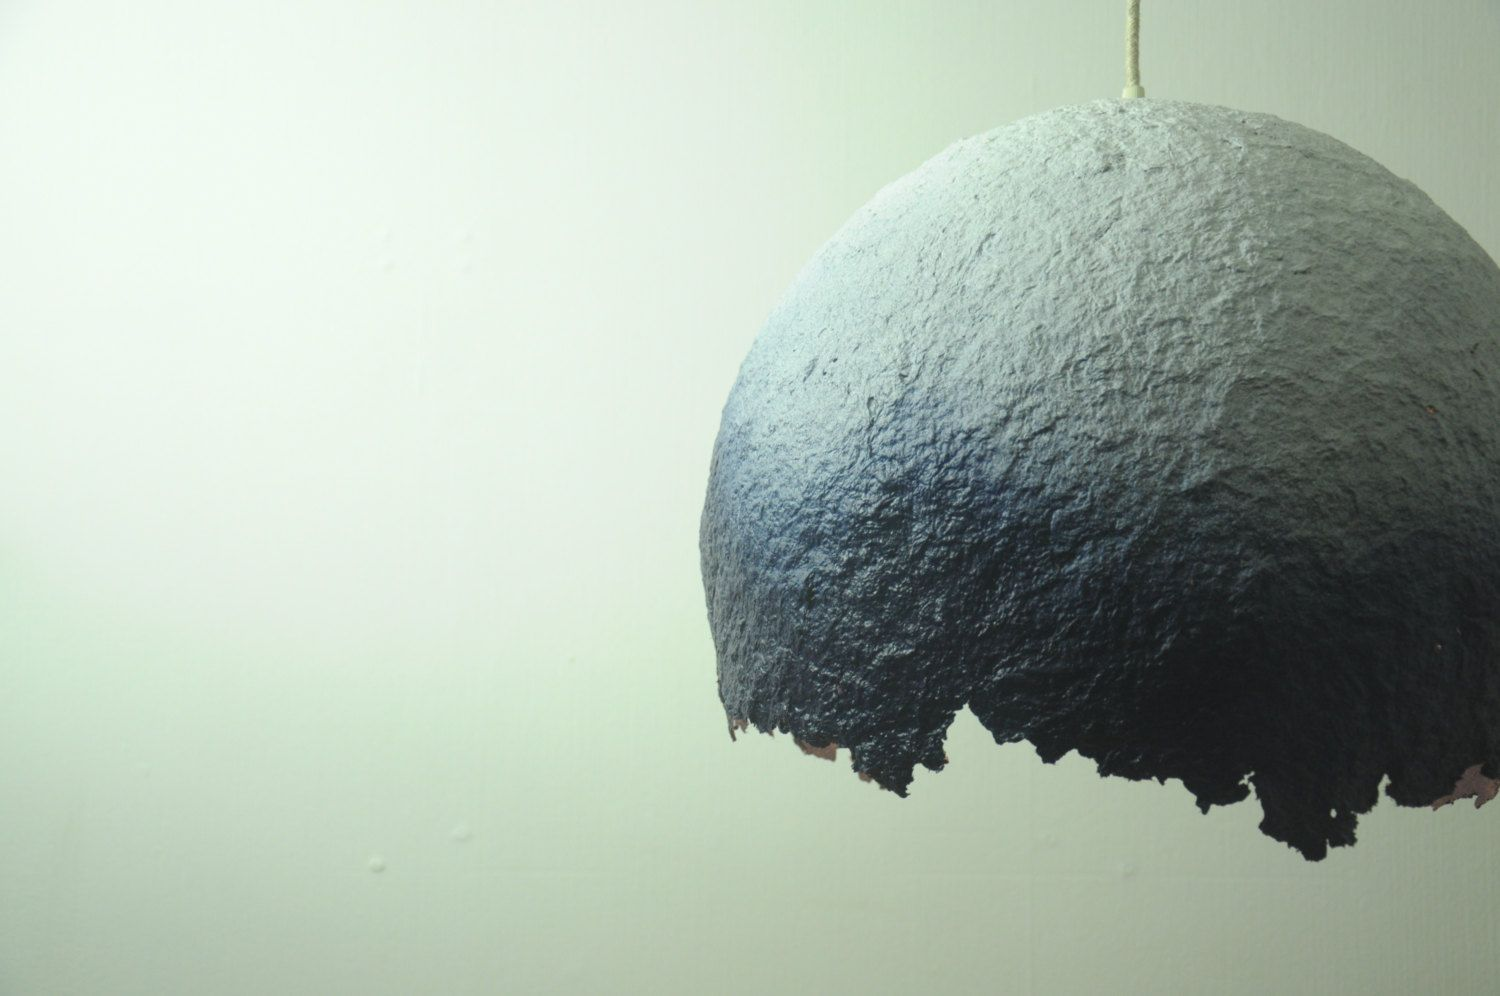 Paper mache lamp - hanging lamp - industrial pendant lamp - paper lamp - indigo blue ombre - dip-dyed - recycled lamp - eco friendly - lamp by RoughHandsTheHague on Etsy